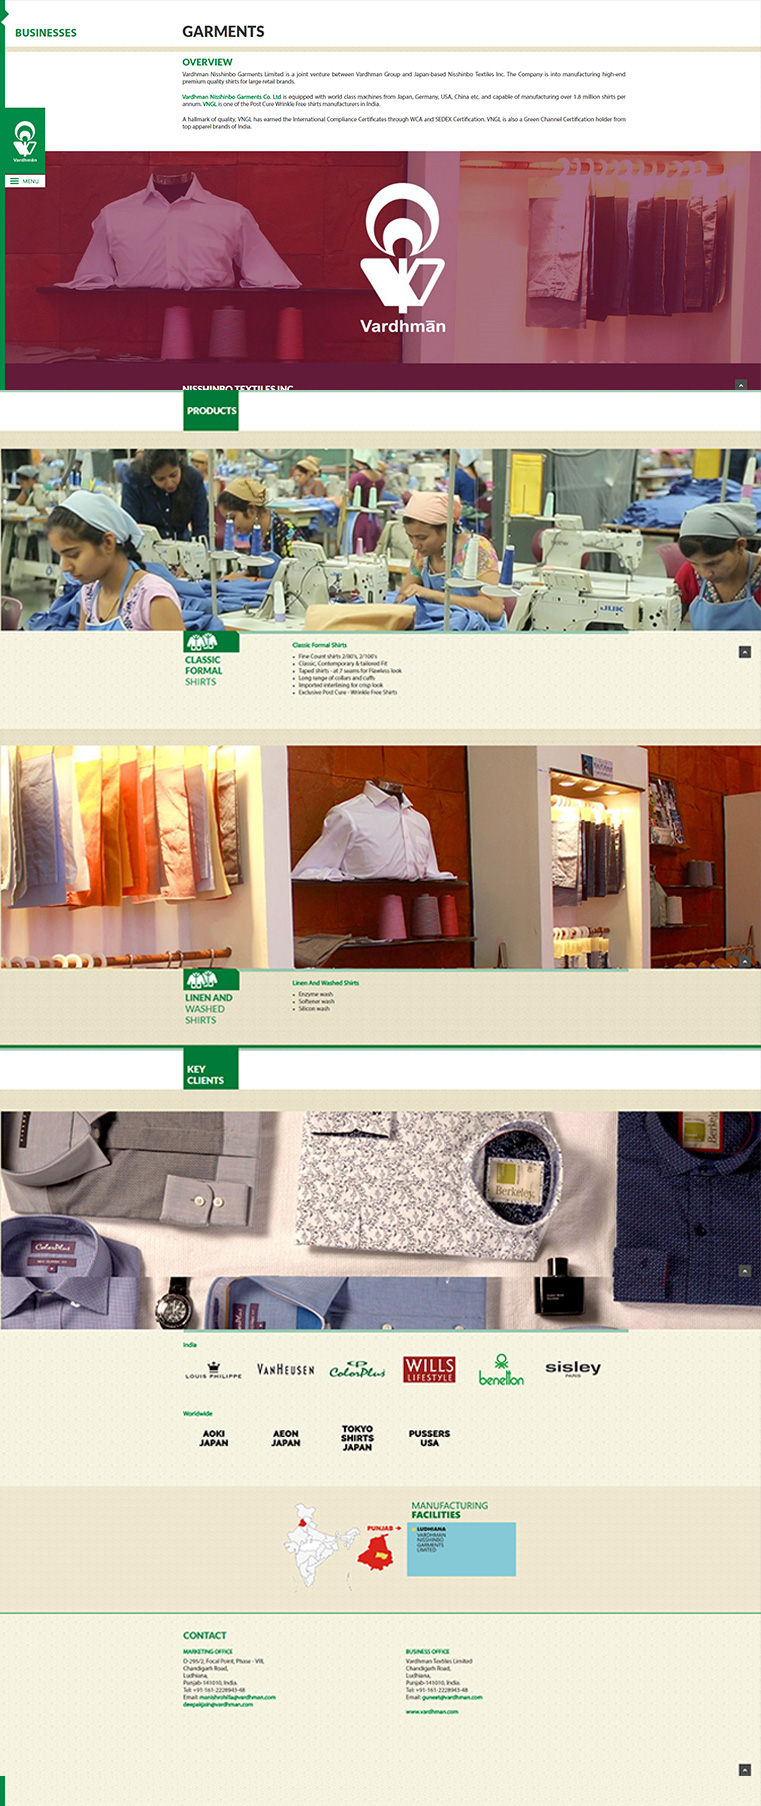 Vardhman Website Garment Page Design